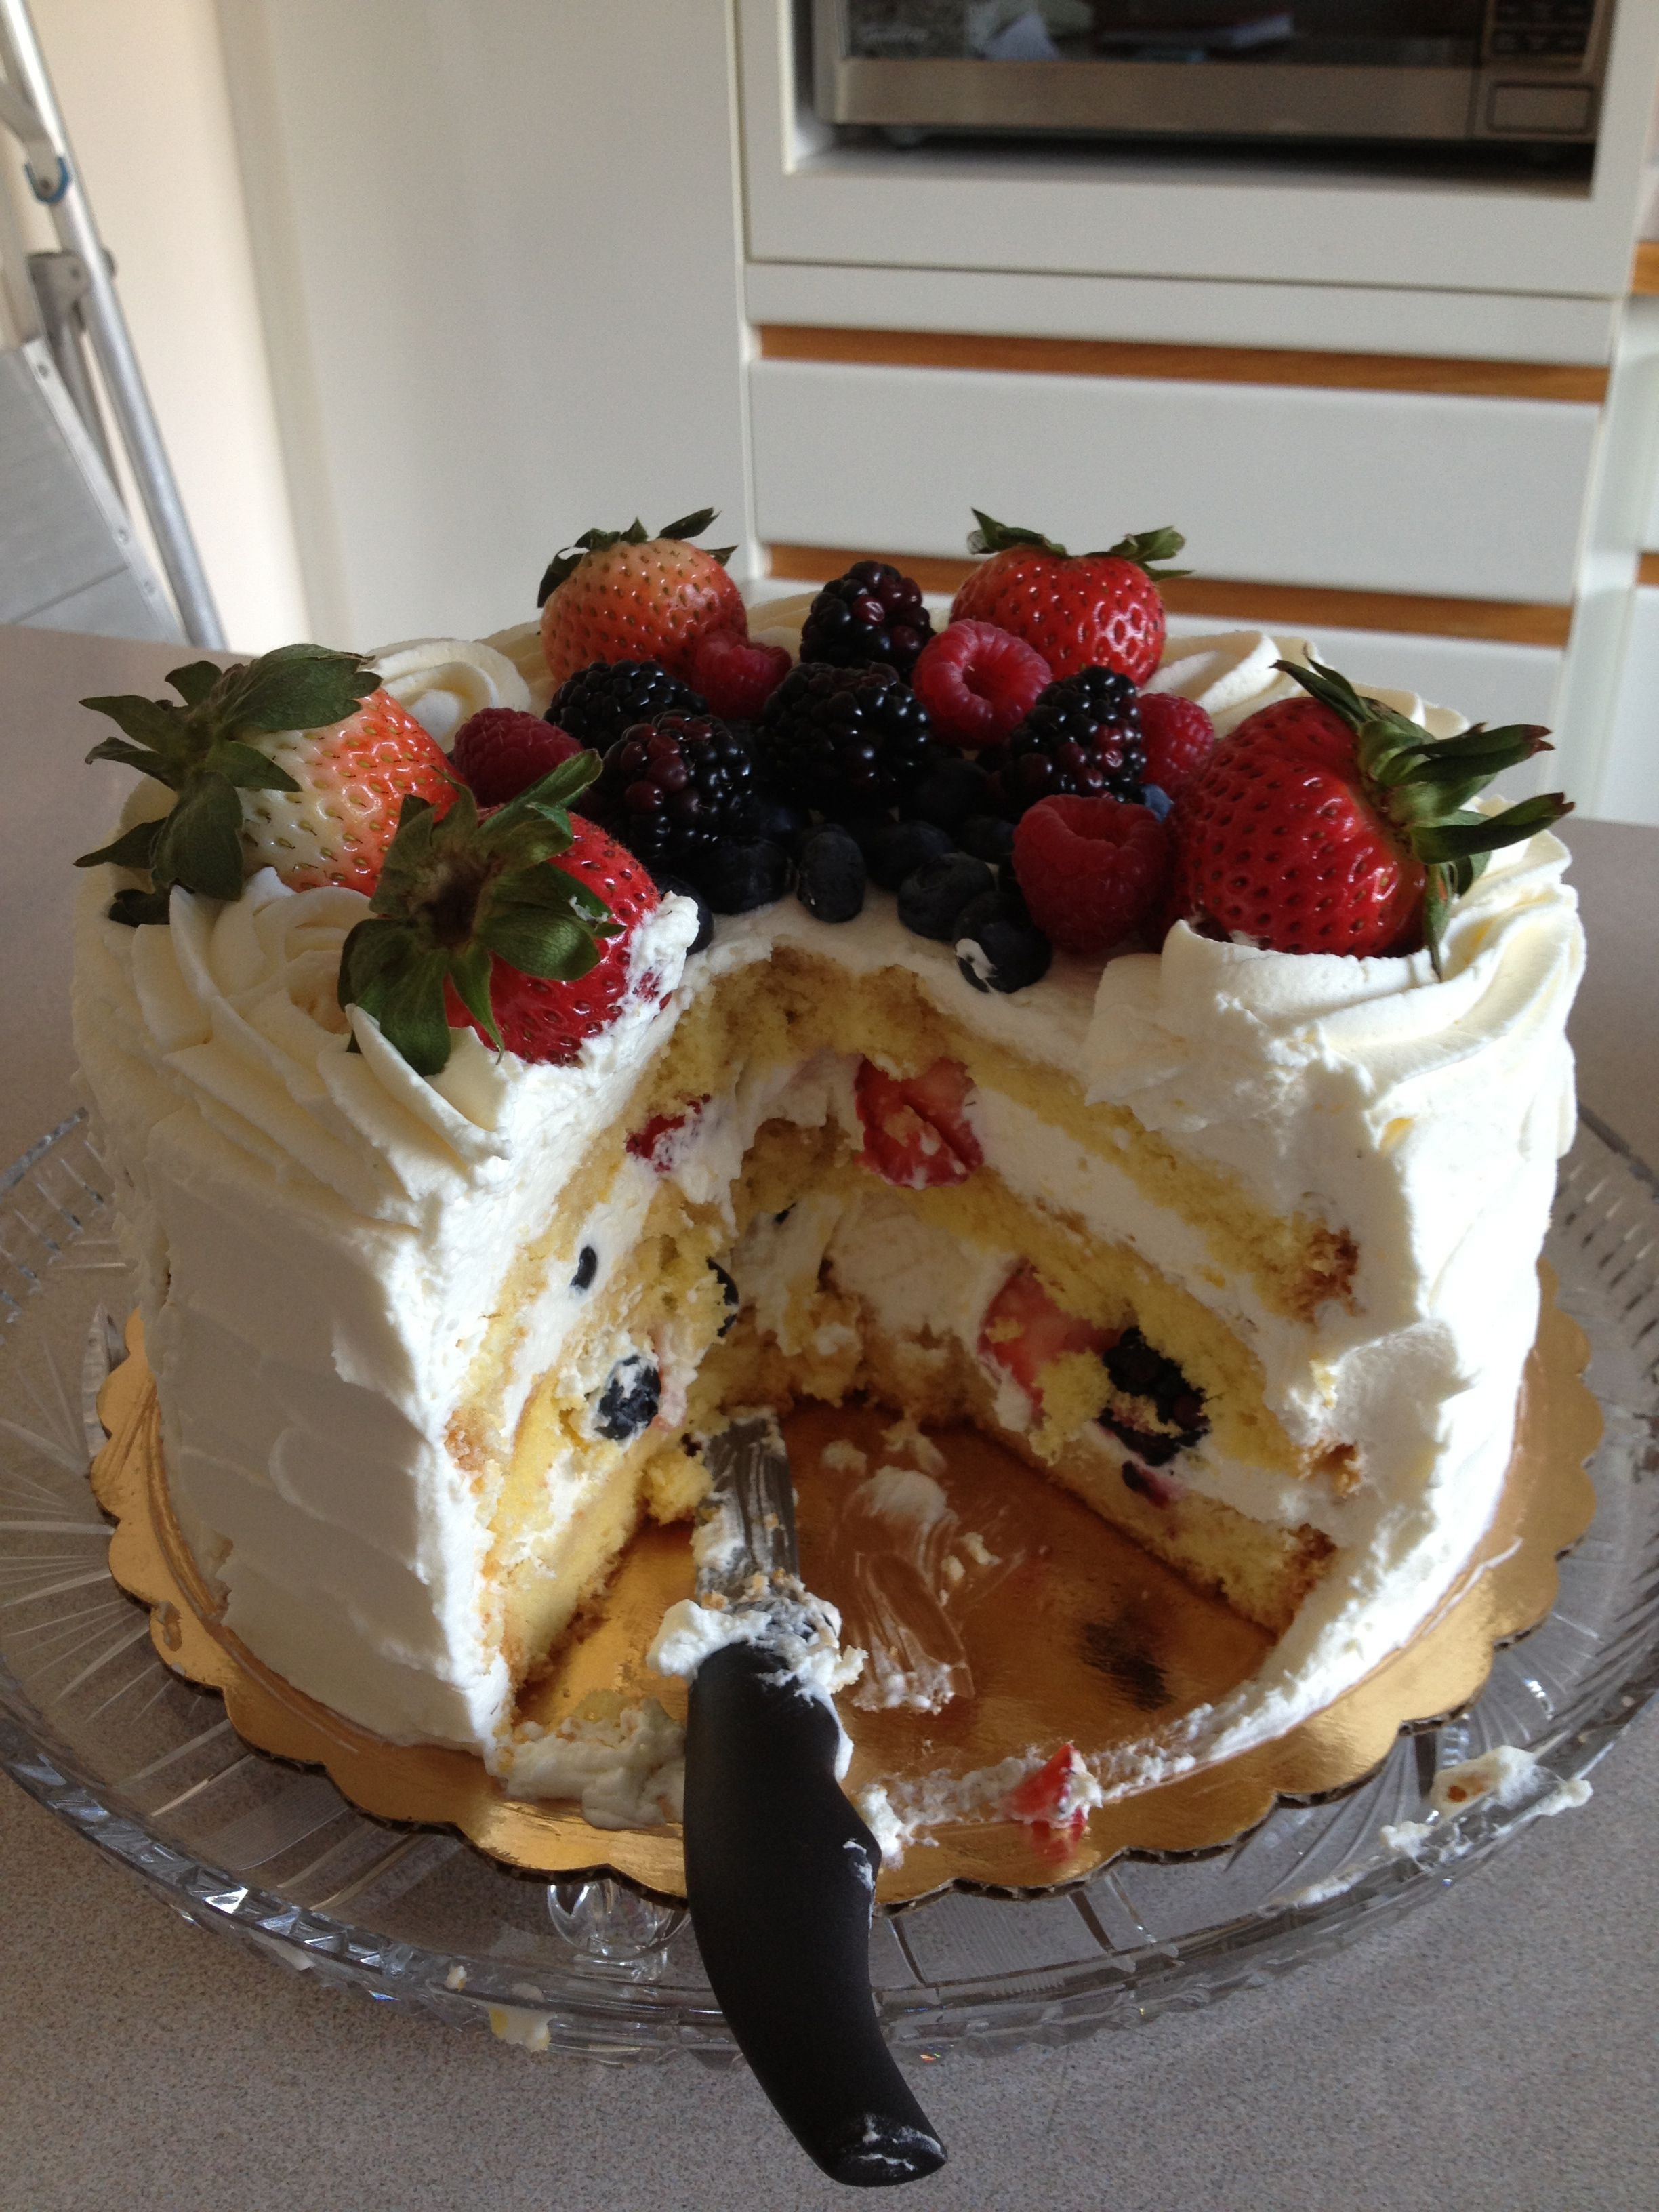 Berry Chantilly Cake from Whole Foods Food, Berry